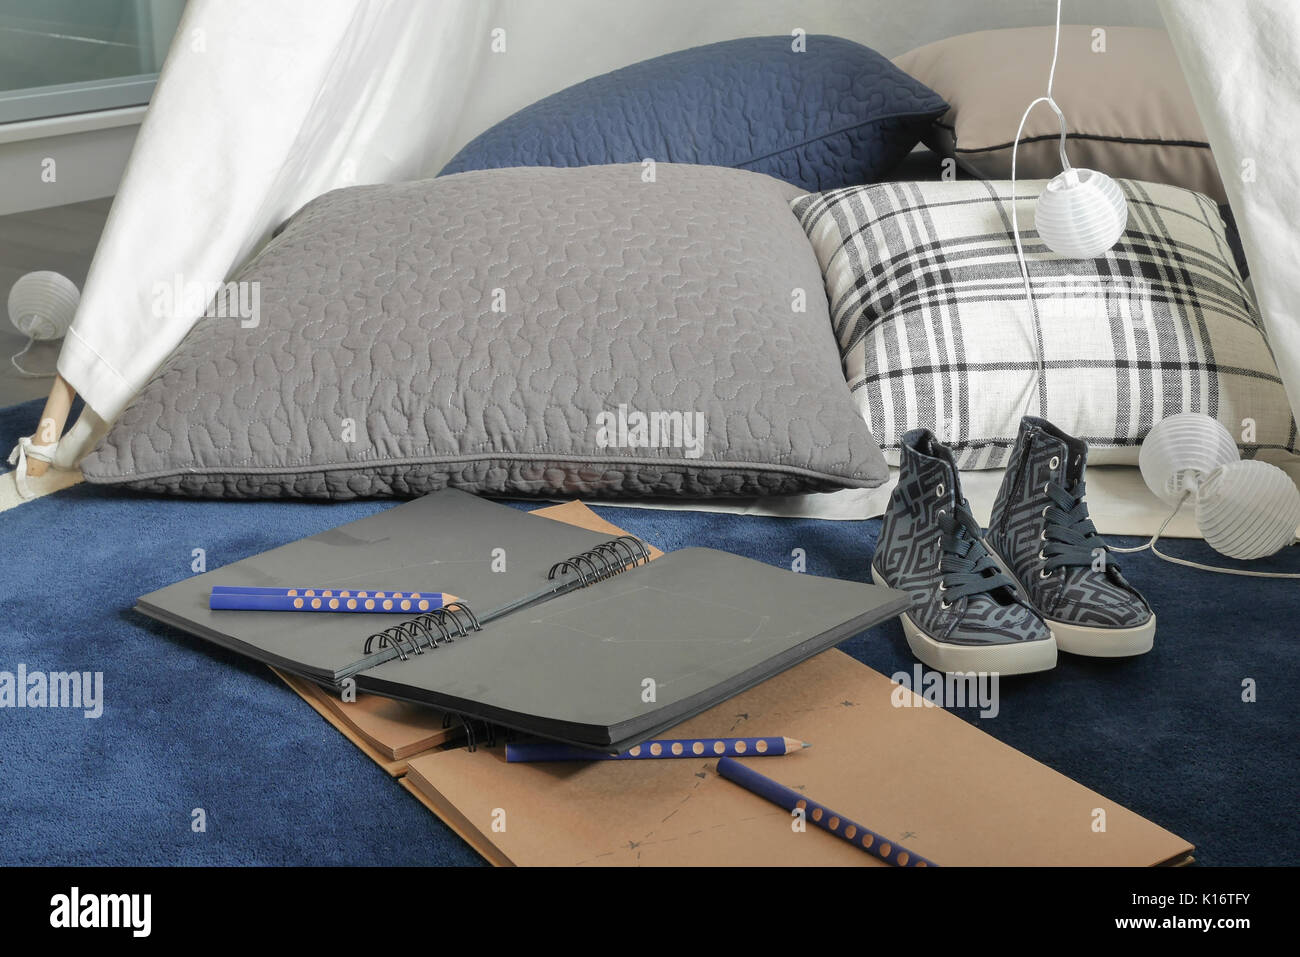 Notebooks and pillow with comfy space for creative people - Stock Image